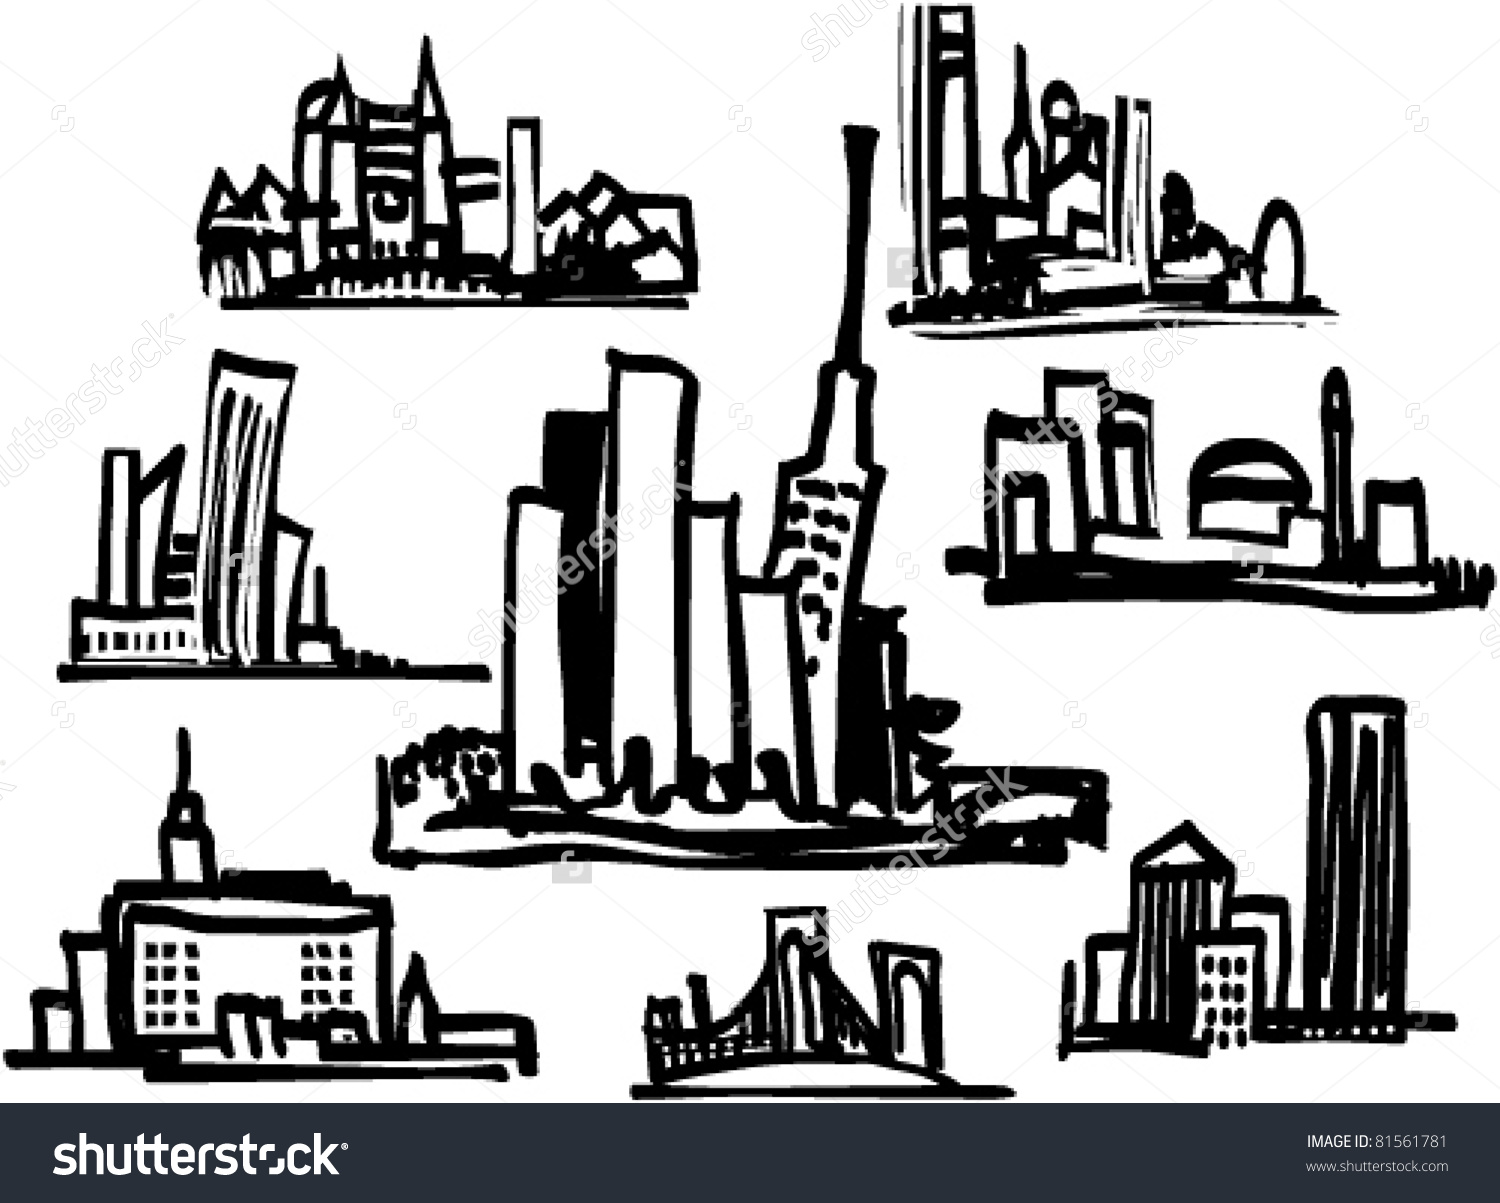 Cityscape clipart #7, Download drawings